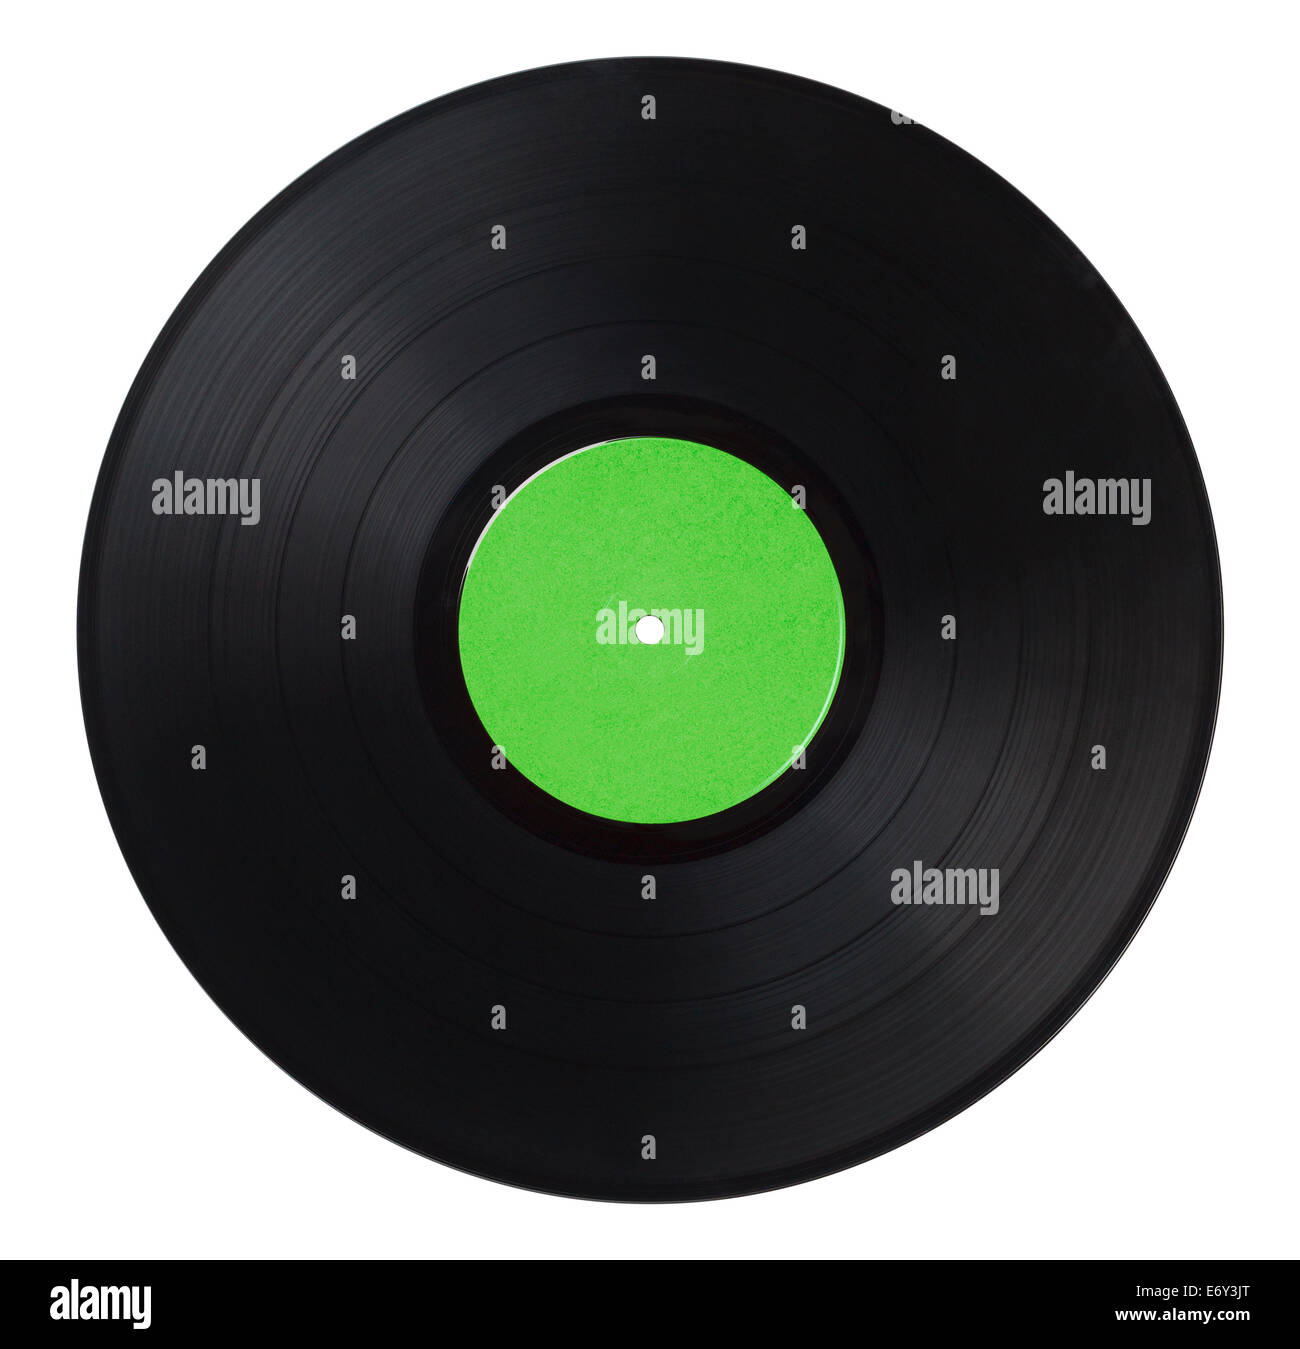 Black Music Record With Green Label Isolated on White Background. - Stock Image